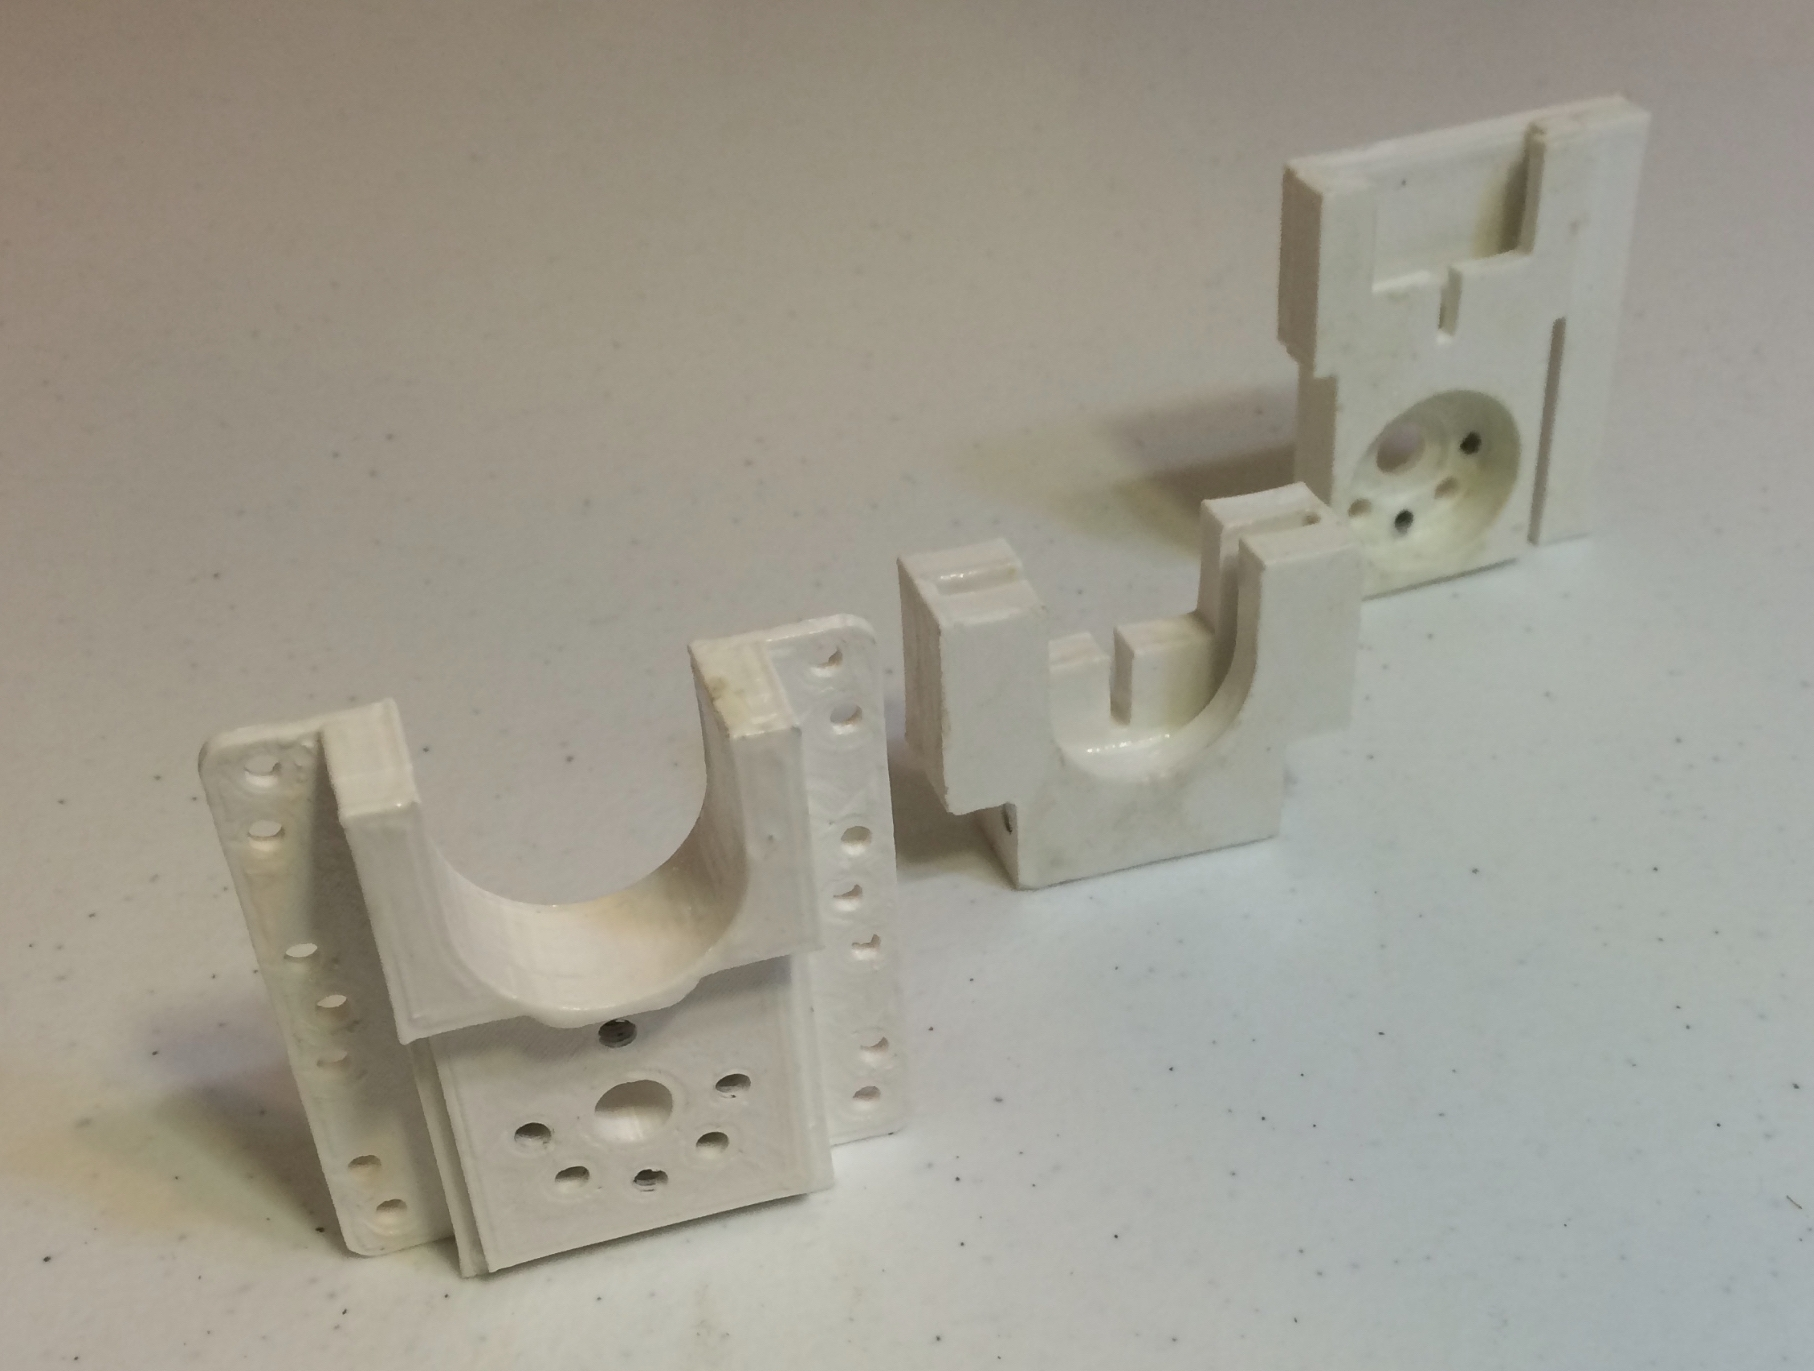 Assembled 3d Printed parts. From left to right: the front mount, mid mount, and plunger unit.